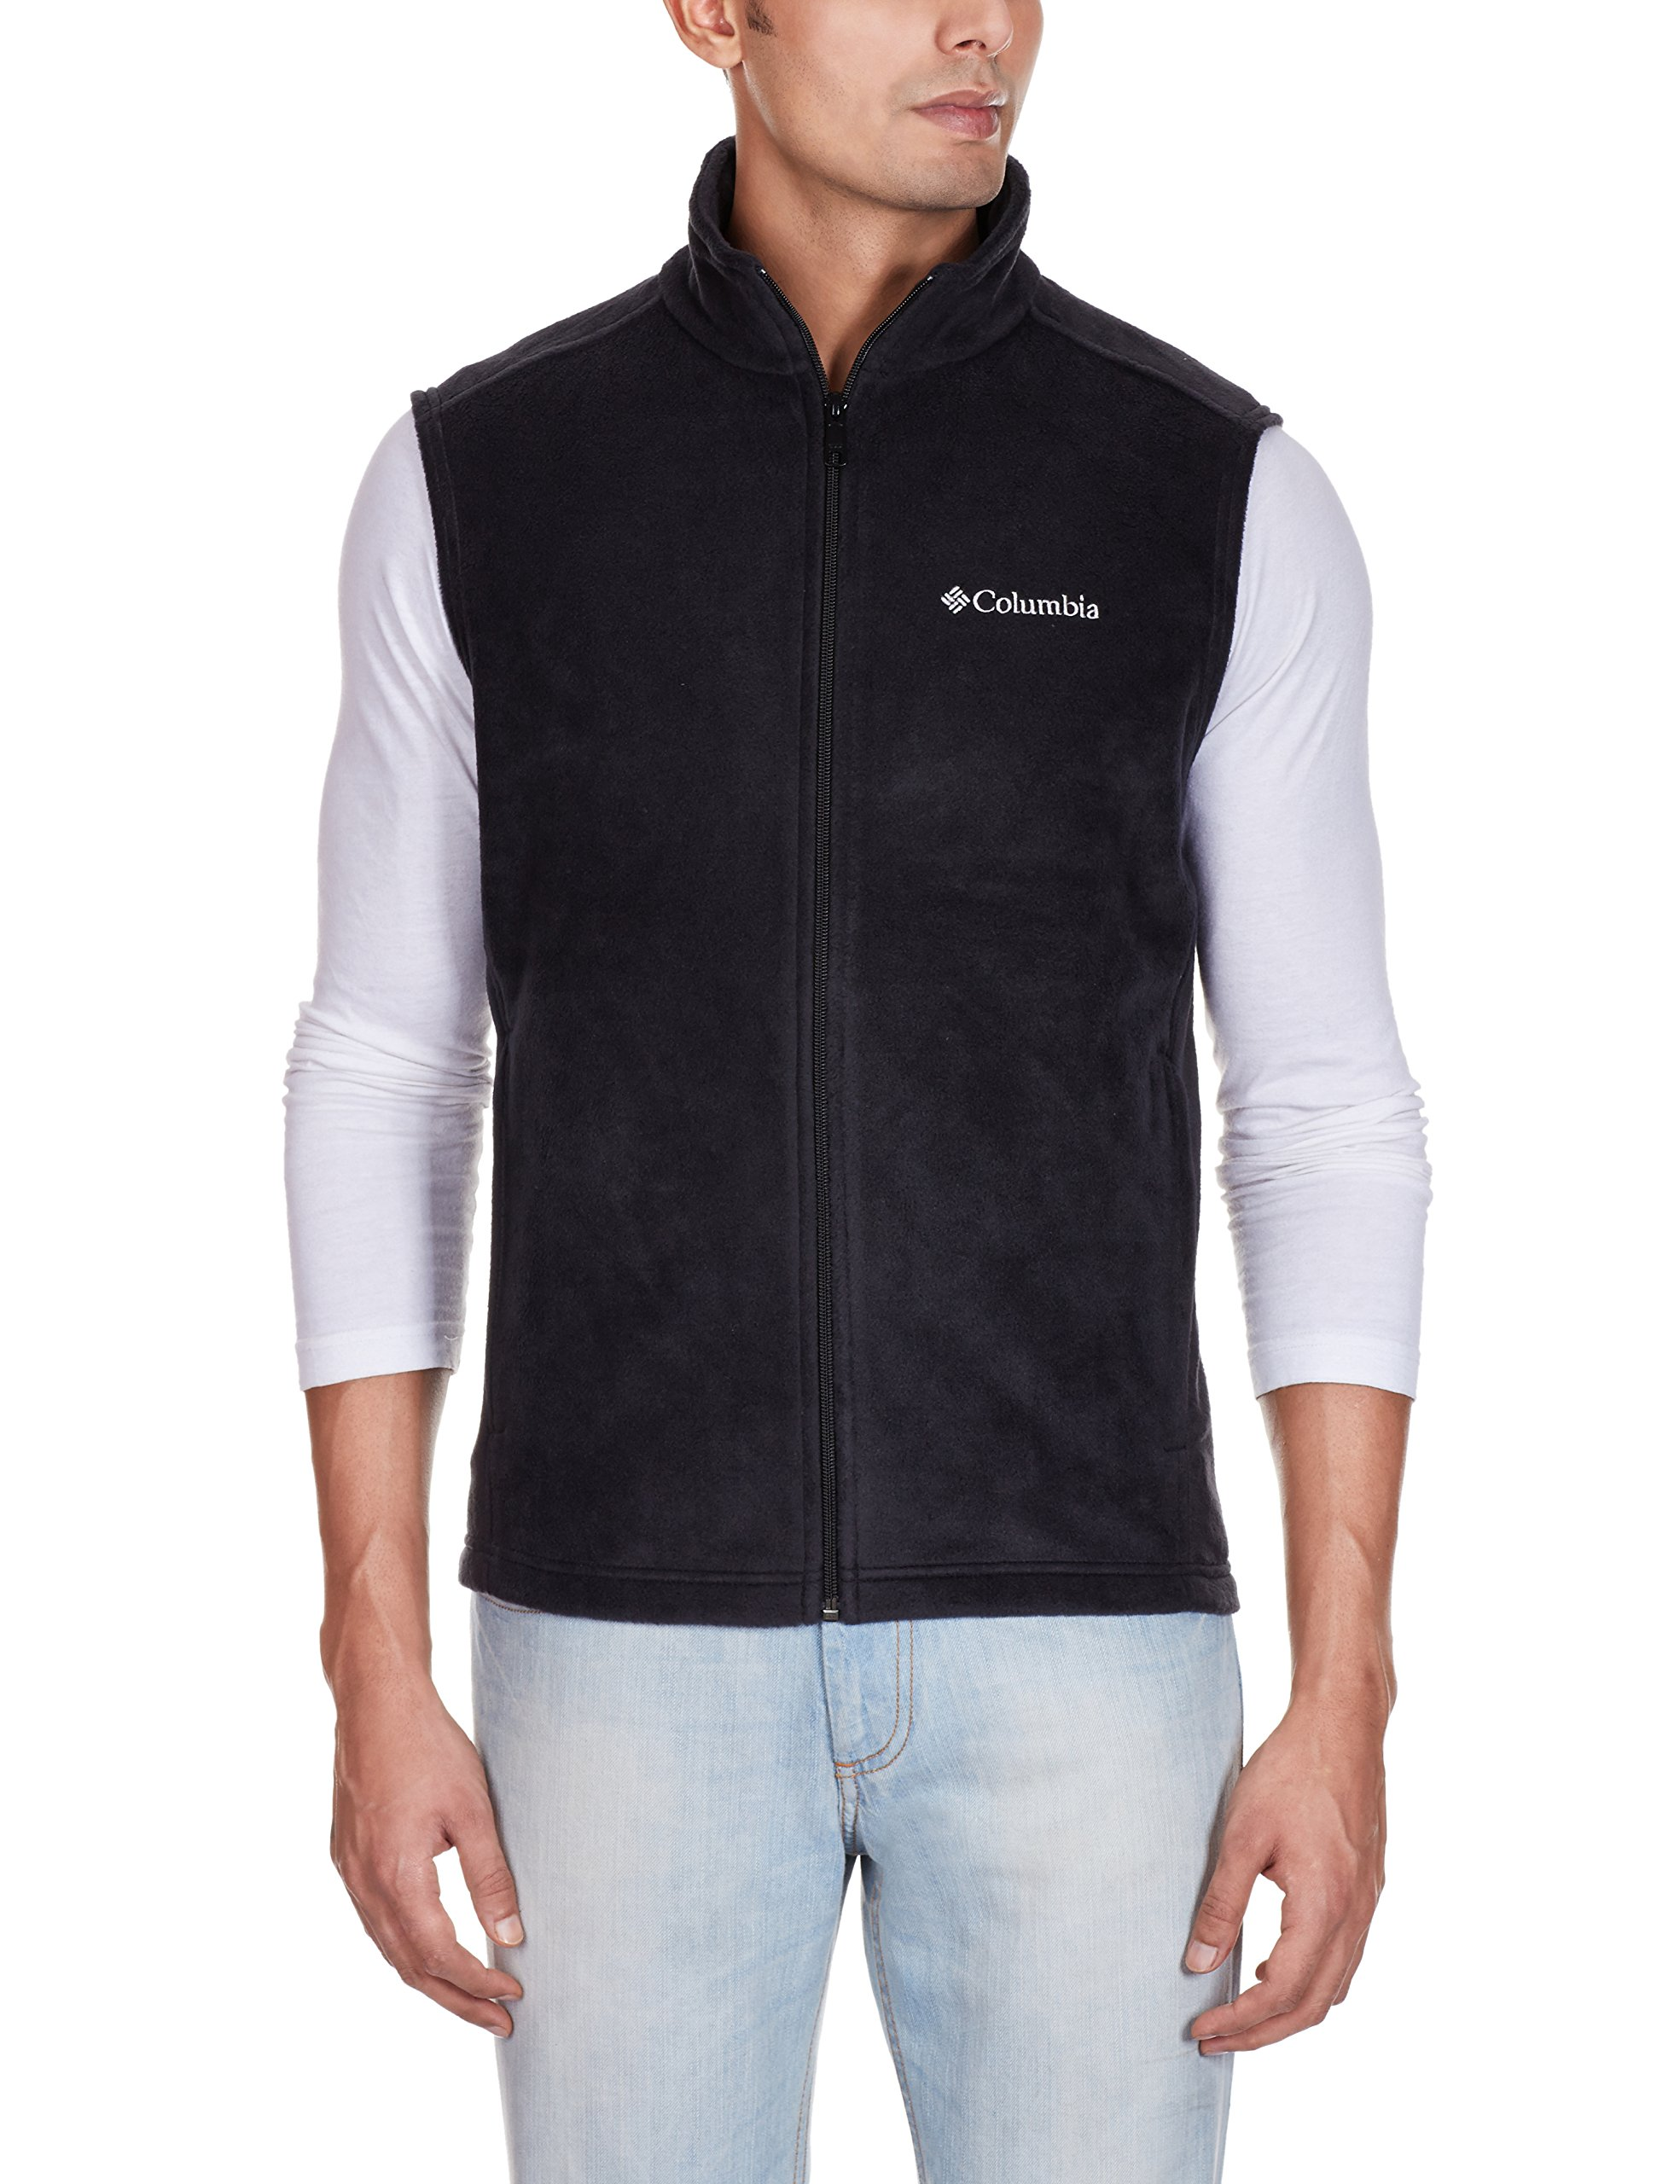 Columbia Men's Cathedral Peak II Fleece Vest, Black, Medium by Columbia